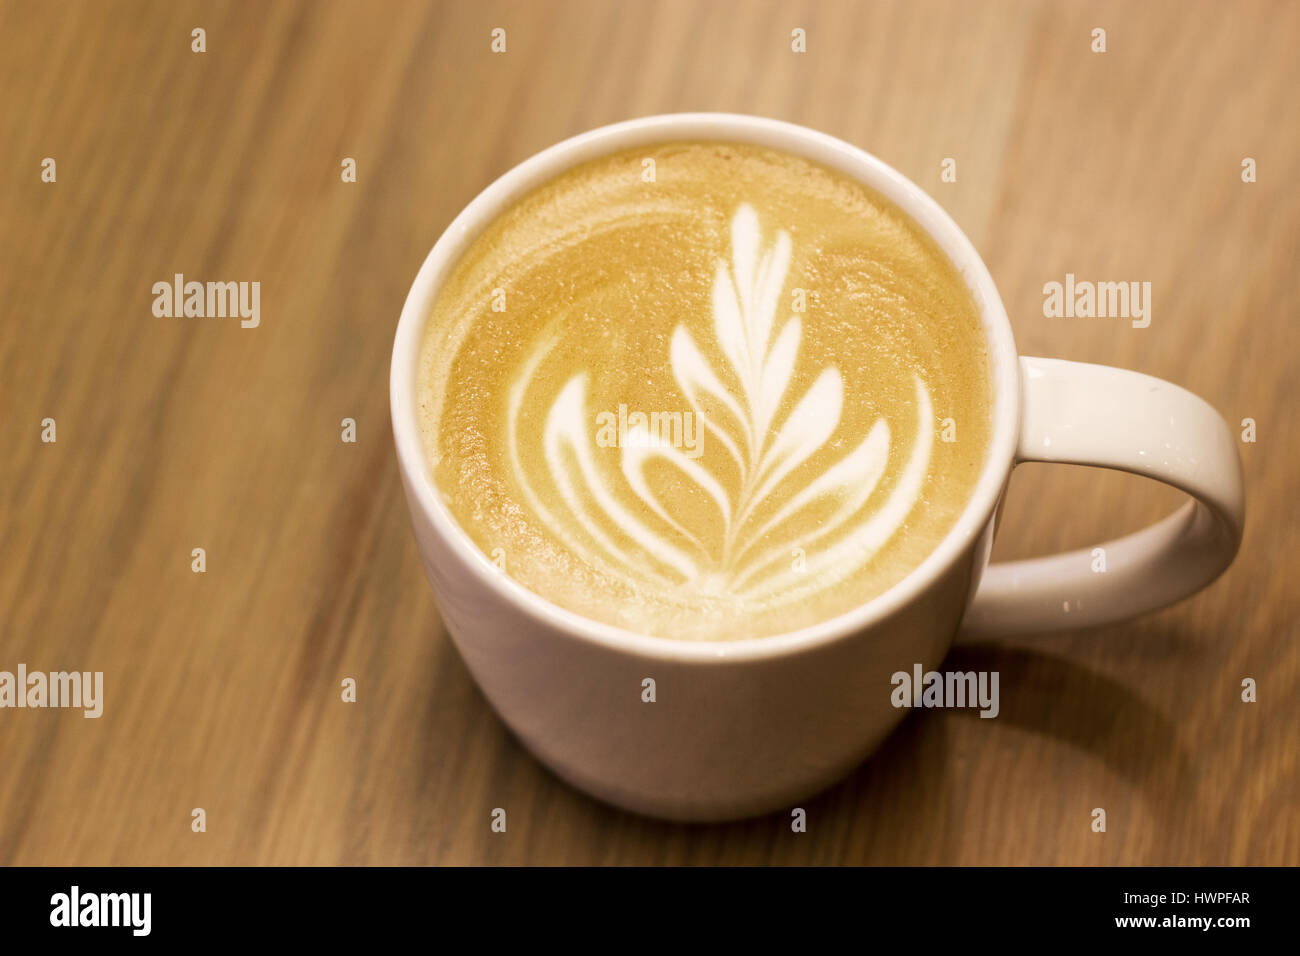 close up late art like fern on top of capucinno coffee on wood background - Stock Image